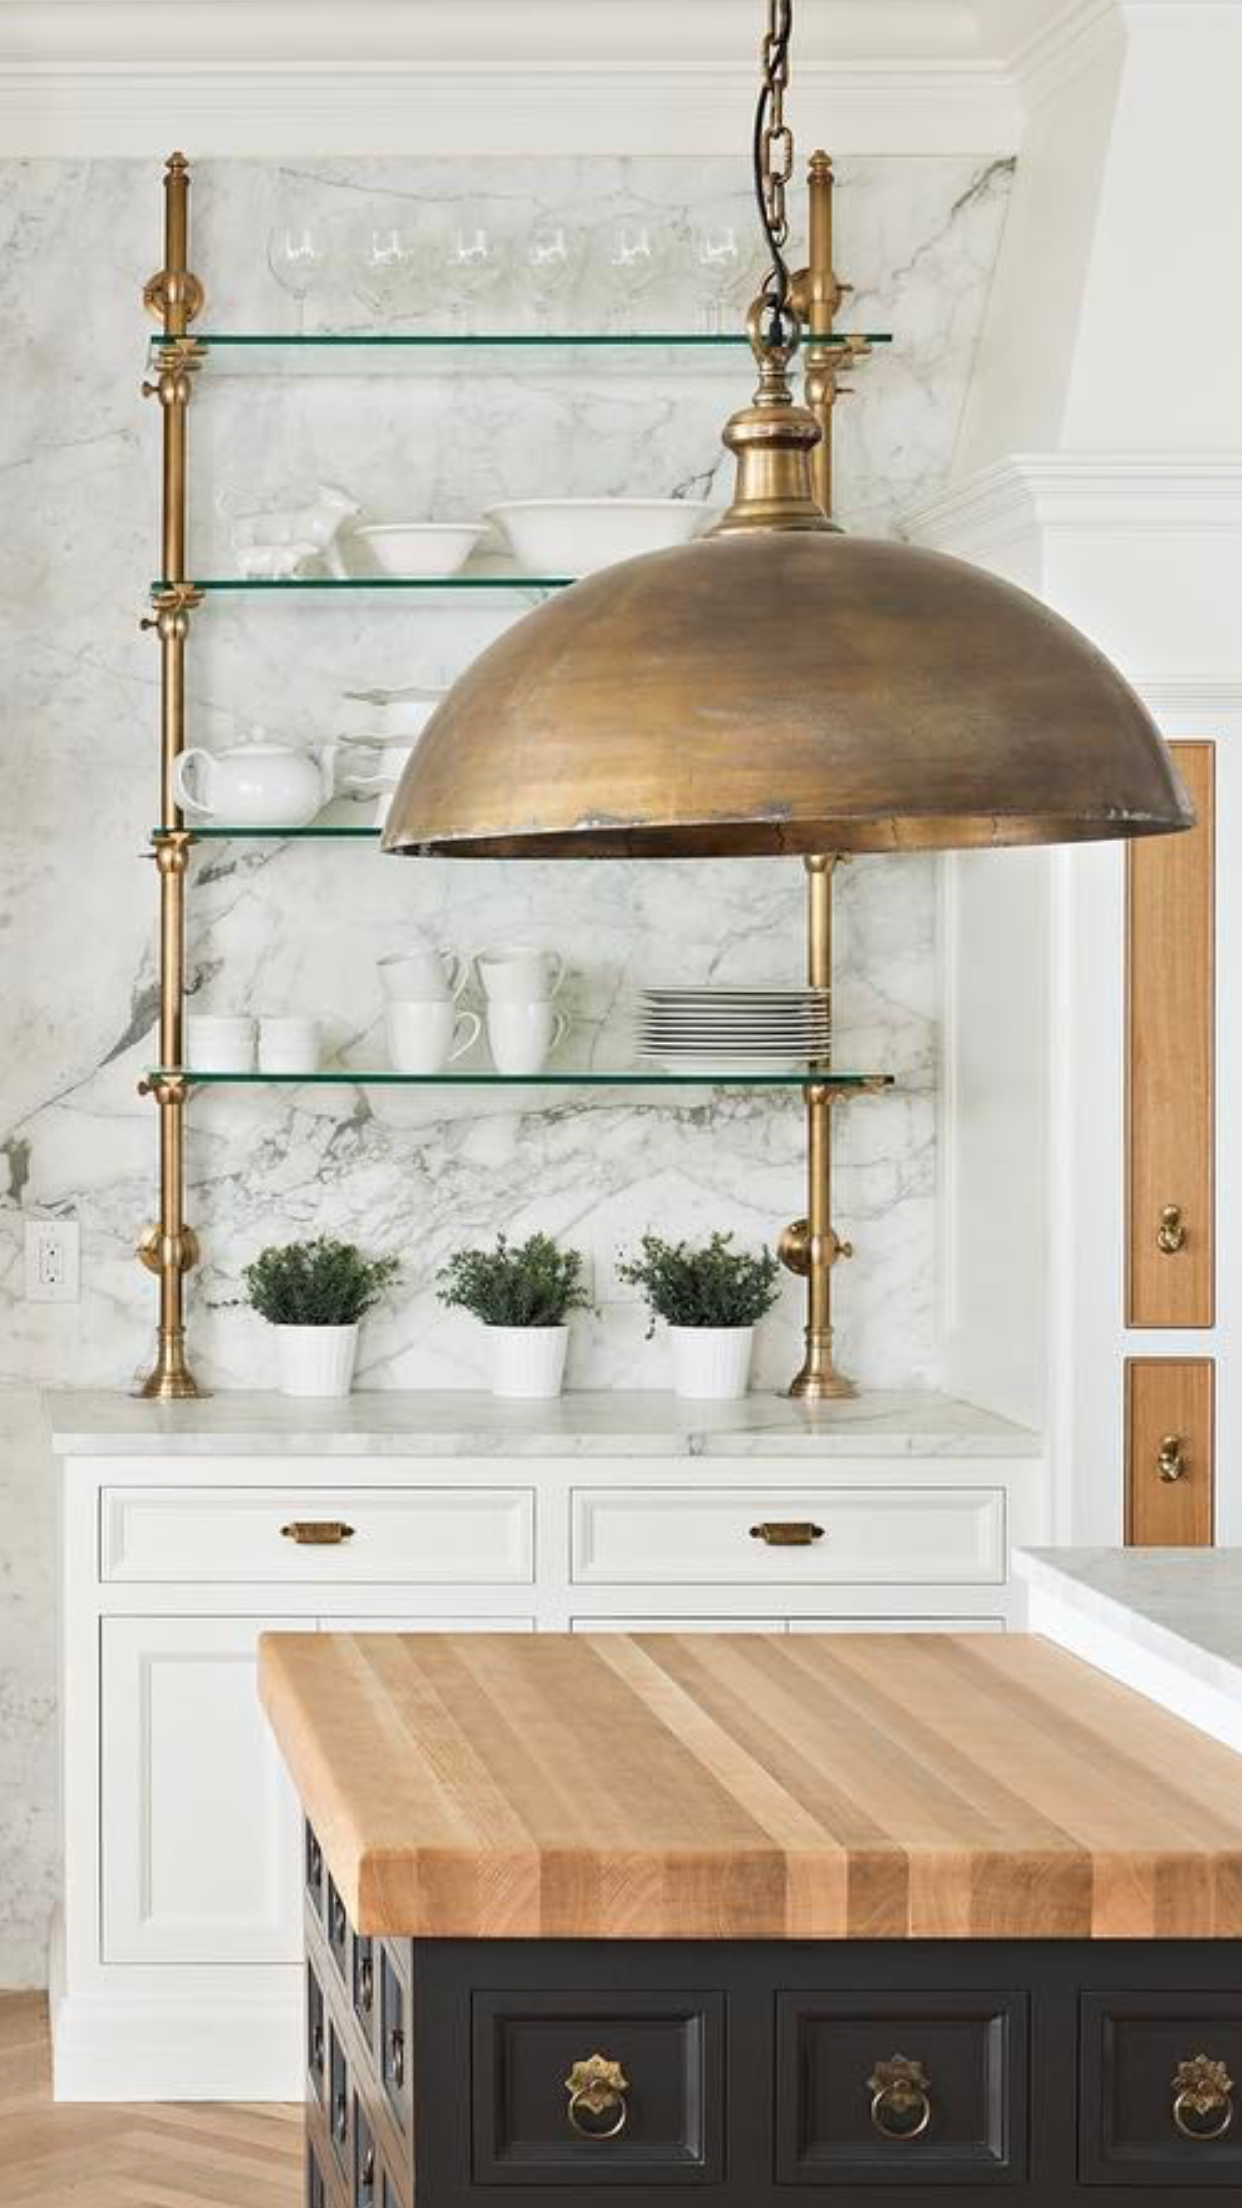 Things We Love: Combining Brass and Marble | Marbles, Kitchens and Glass